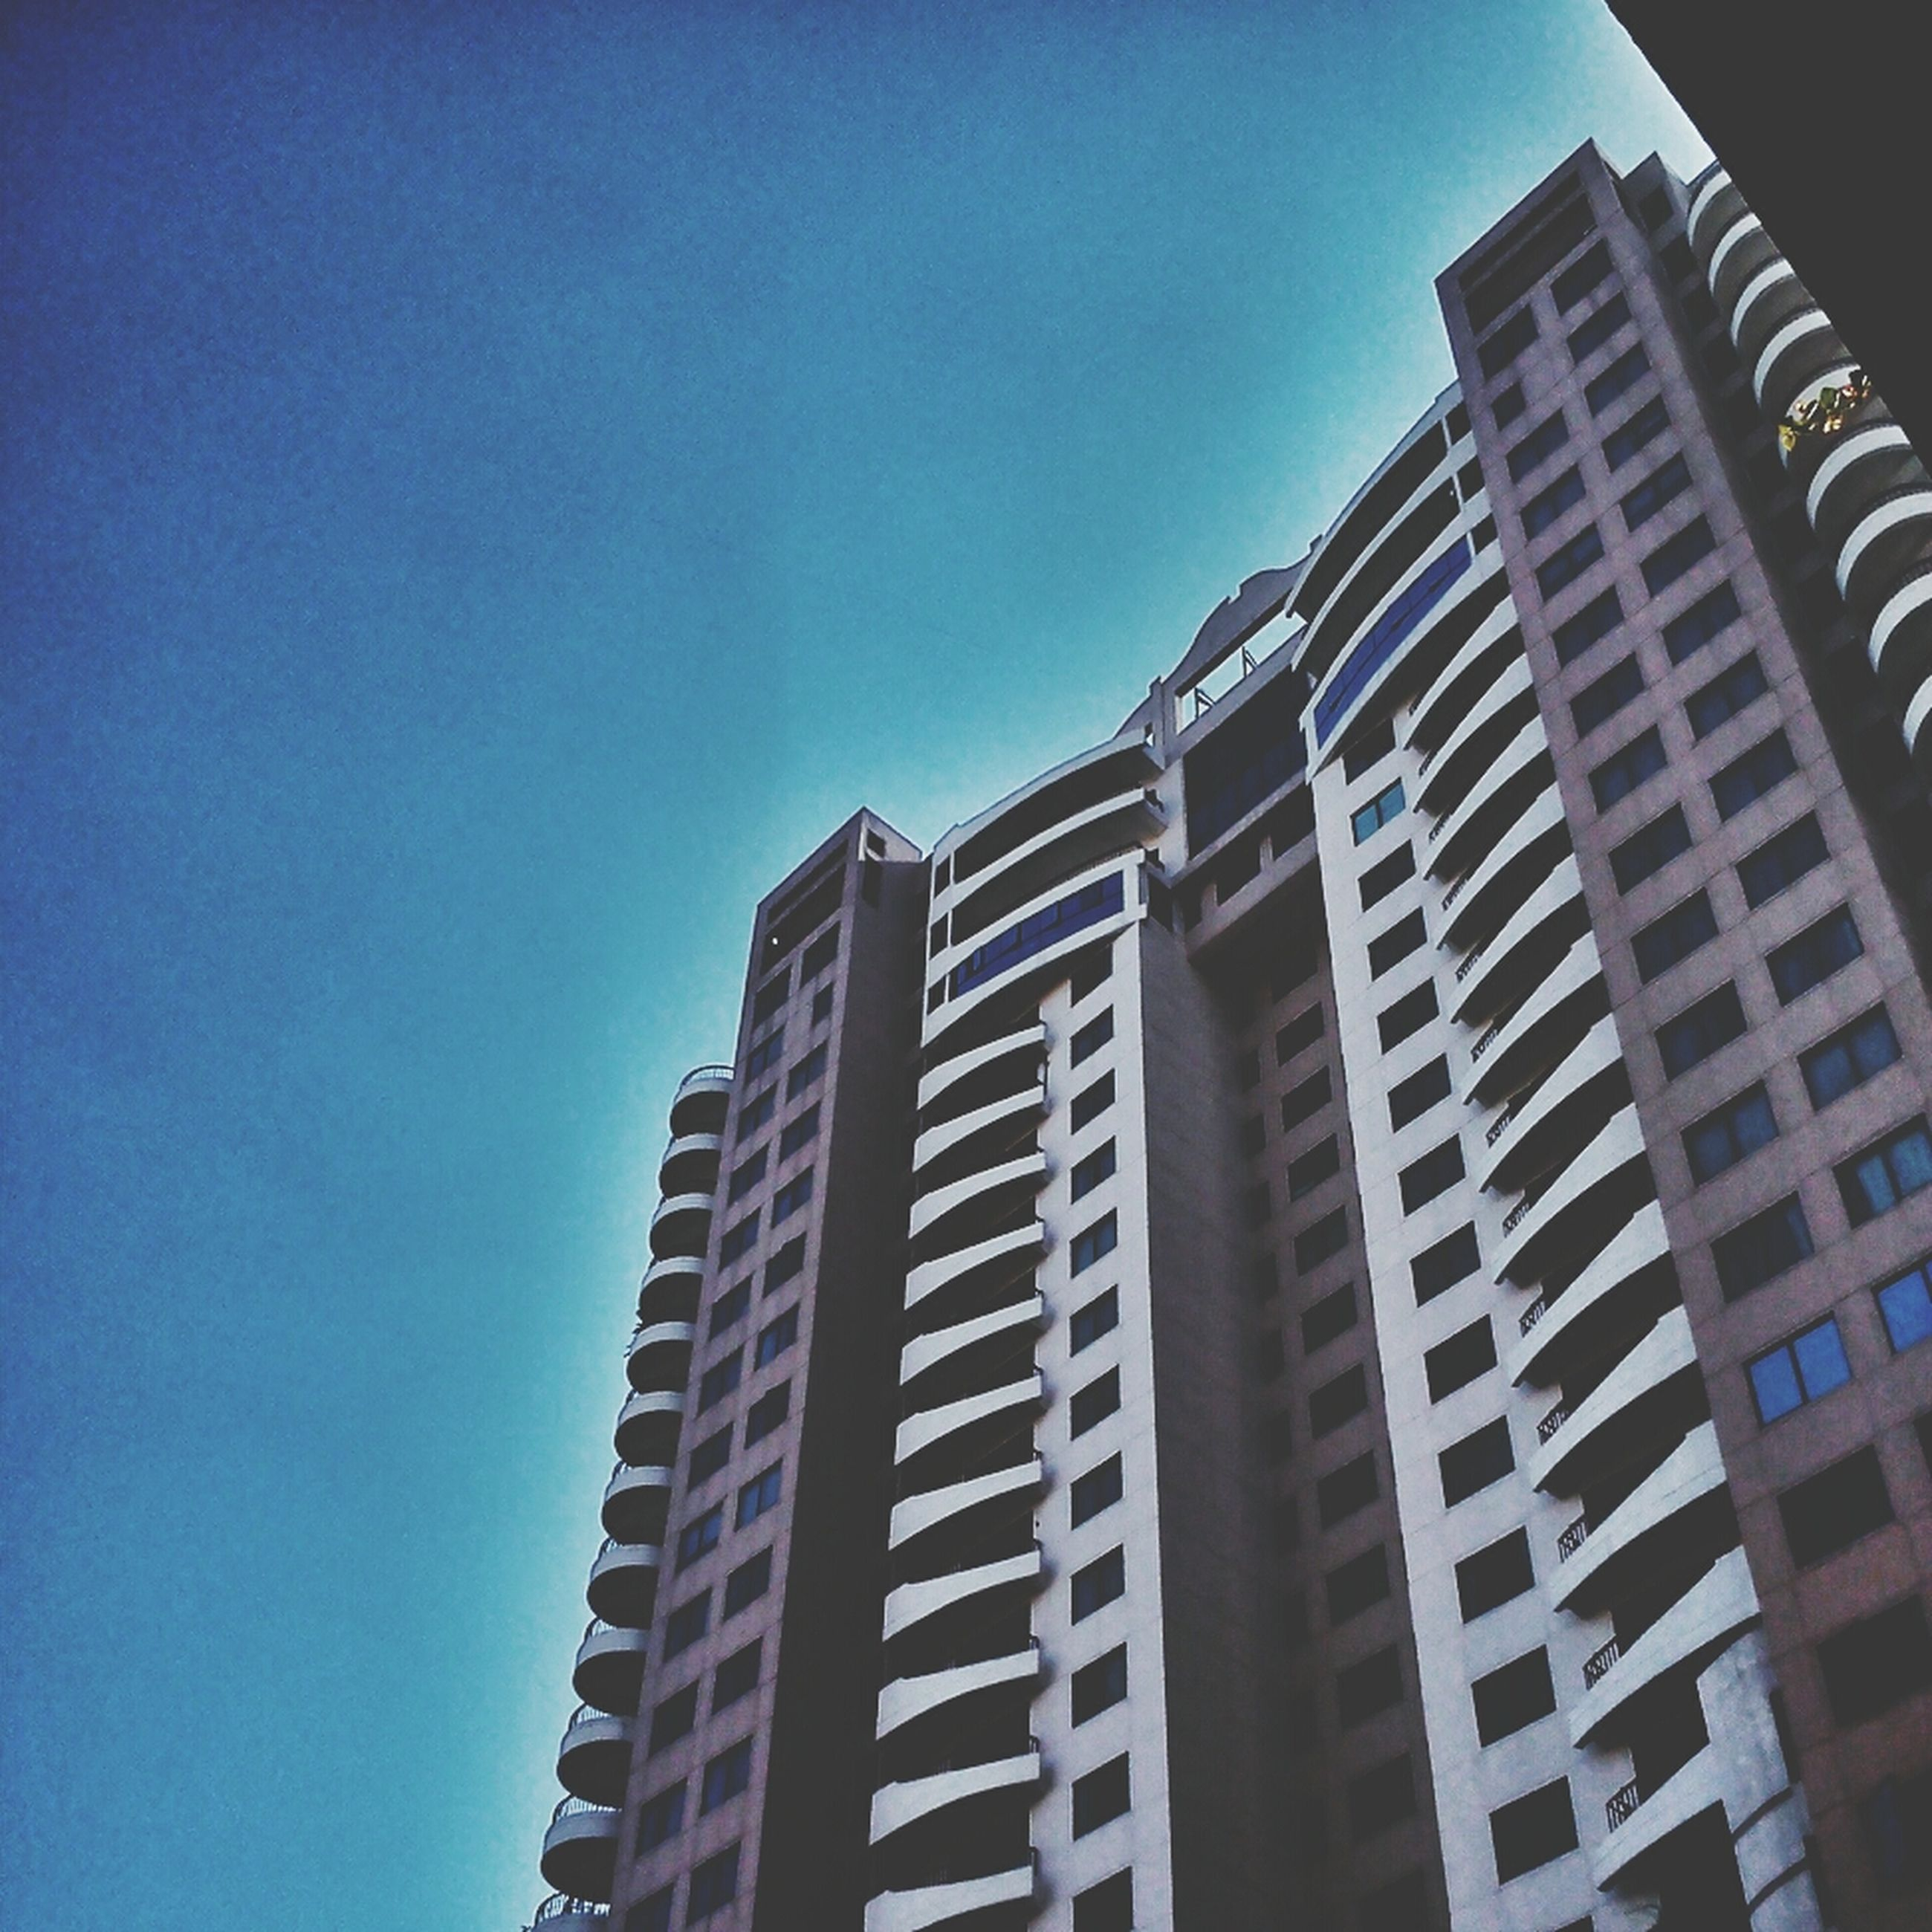 building exterior, architecture, built structure, low angle view, clear sky, city, blue, building, office building, modern, skyscraper, tall - high, tower, residential building, sky, copy space, residential structure, window, outdoors, day